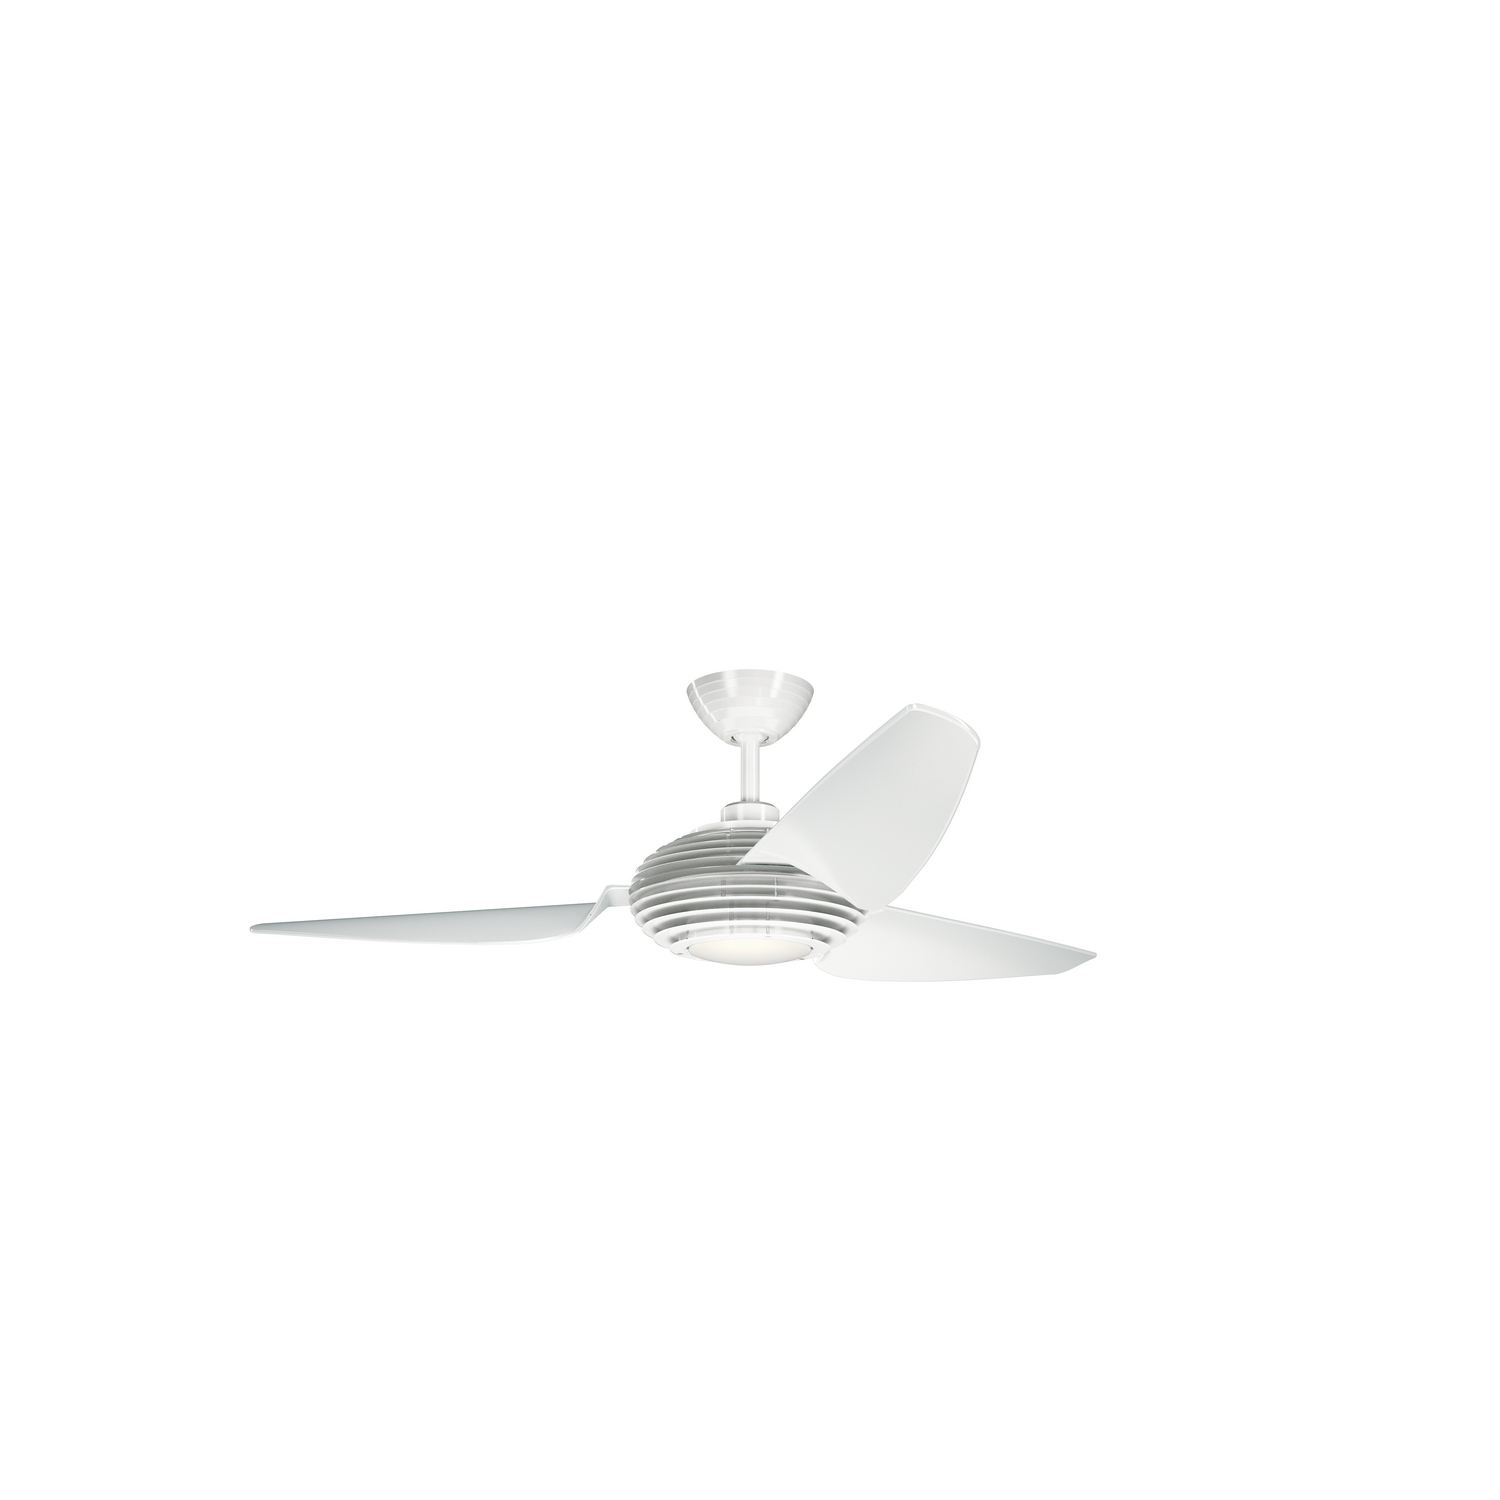 60 inchCeiling Fan from the Voya collection by Kichler 300706WH